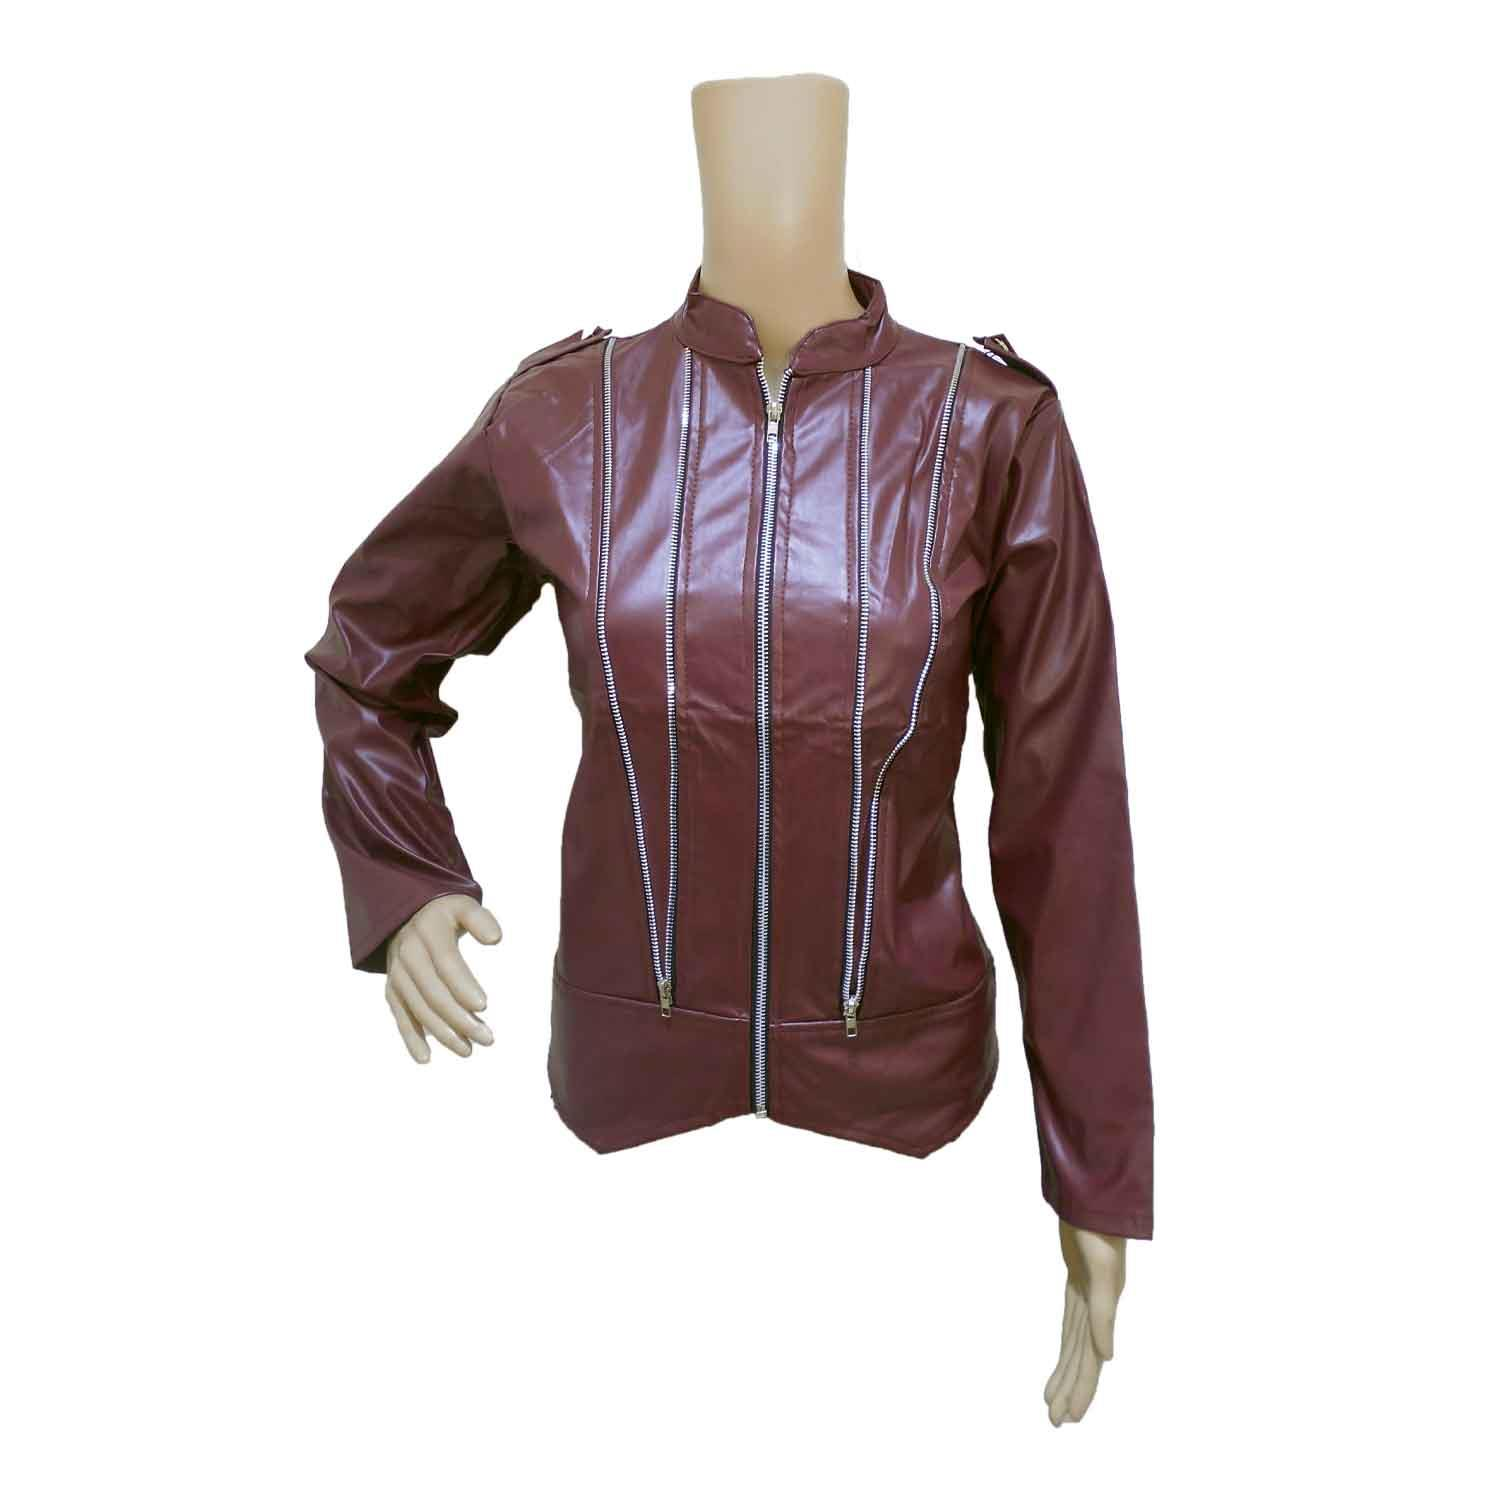 LADIE'S JACKET -1 WINE FREE SIZE